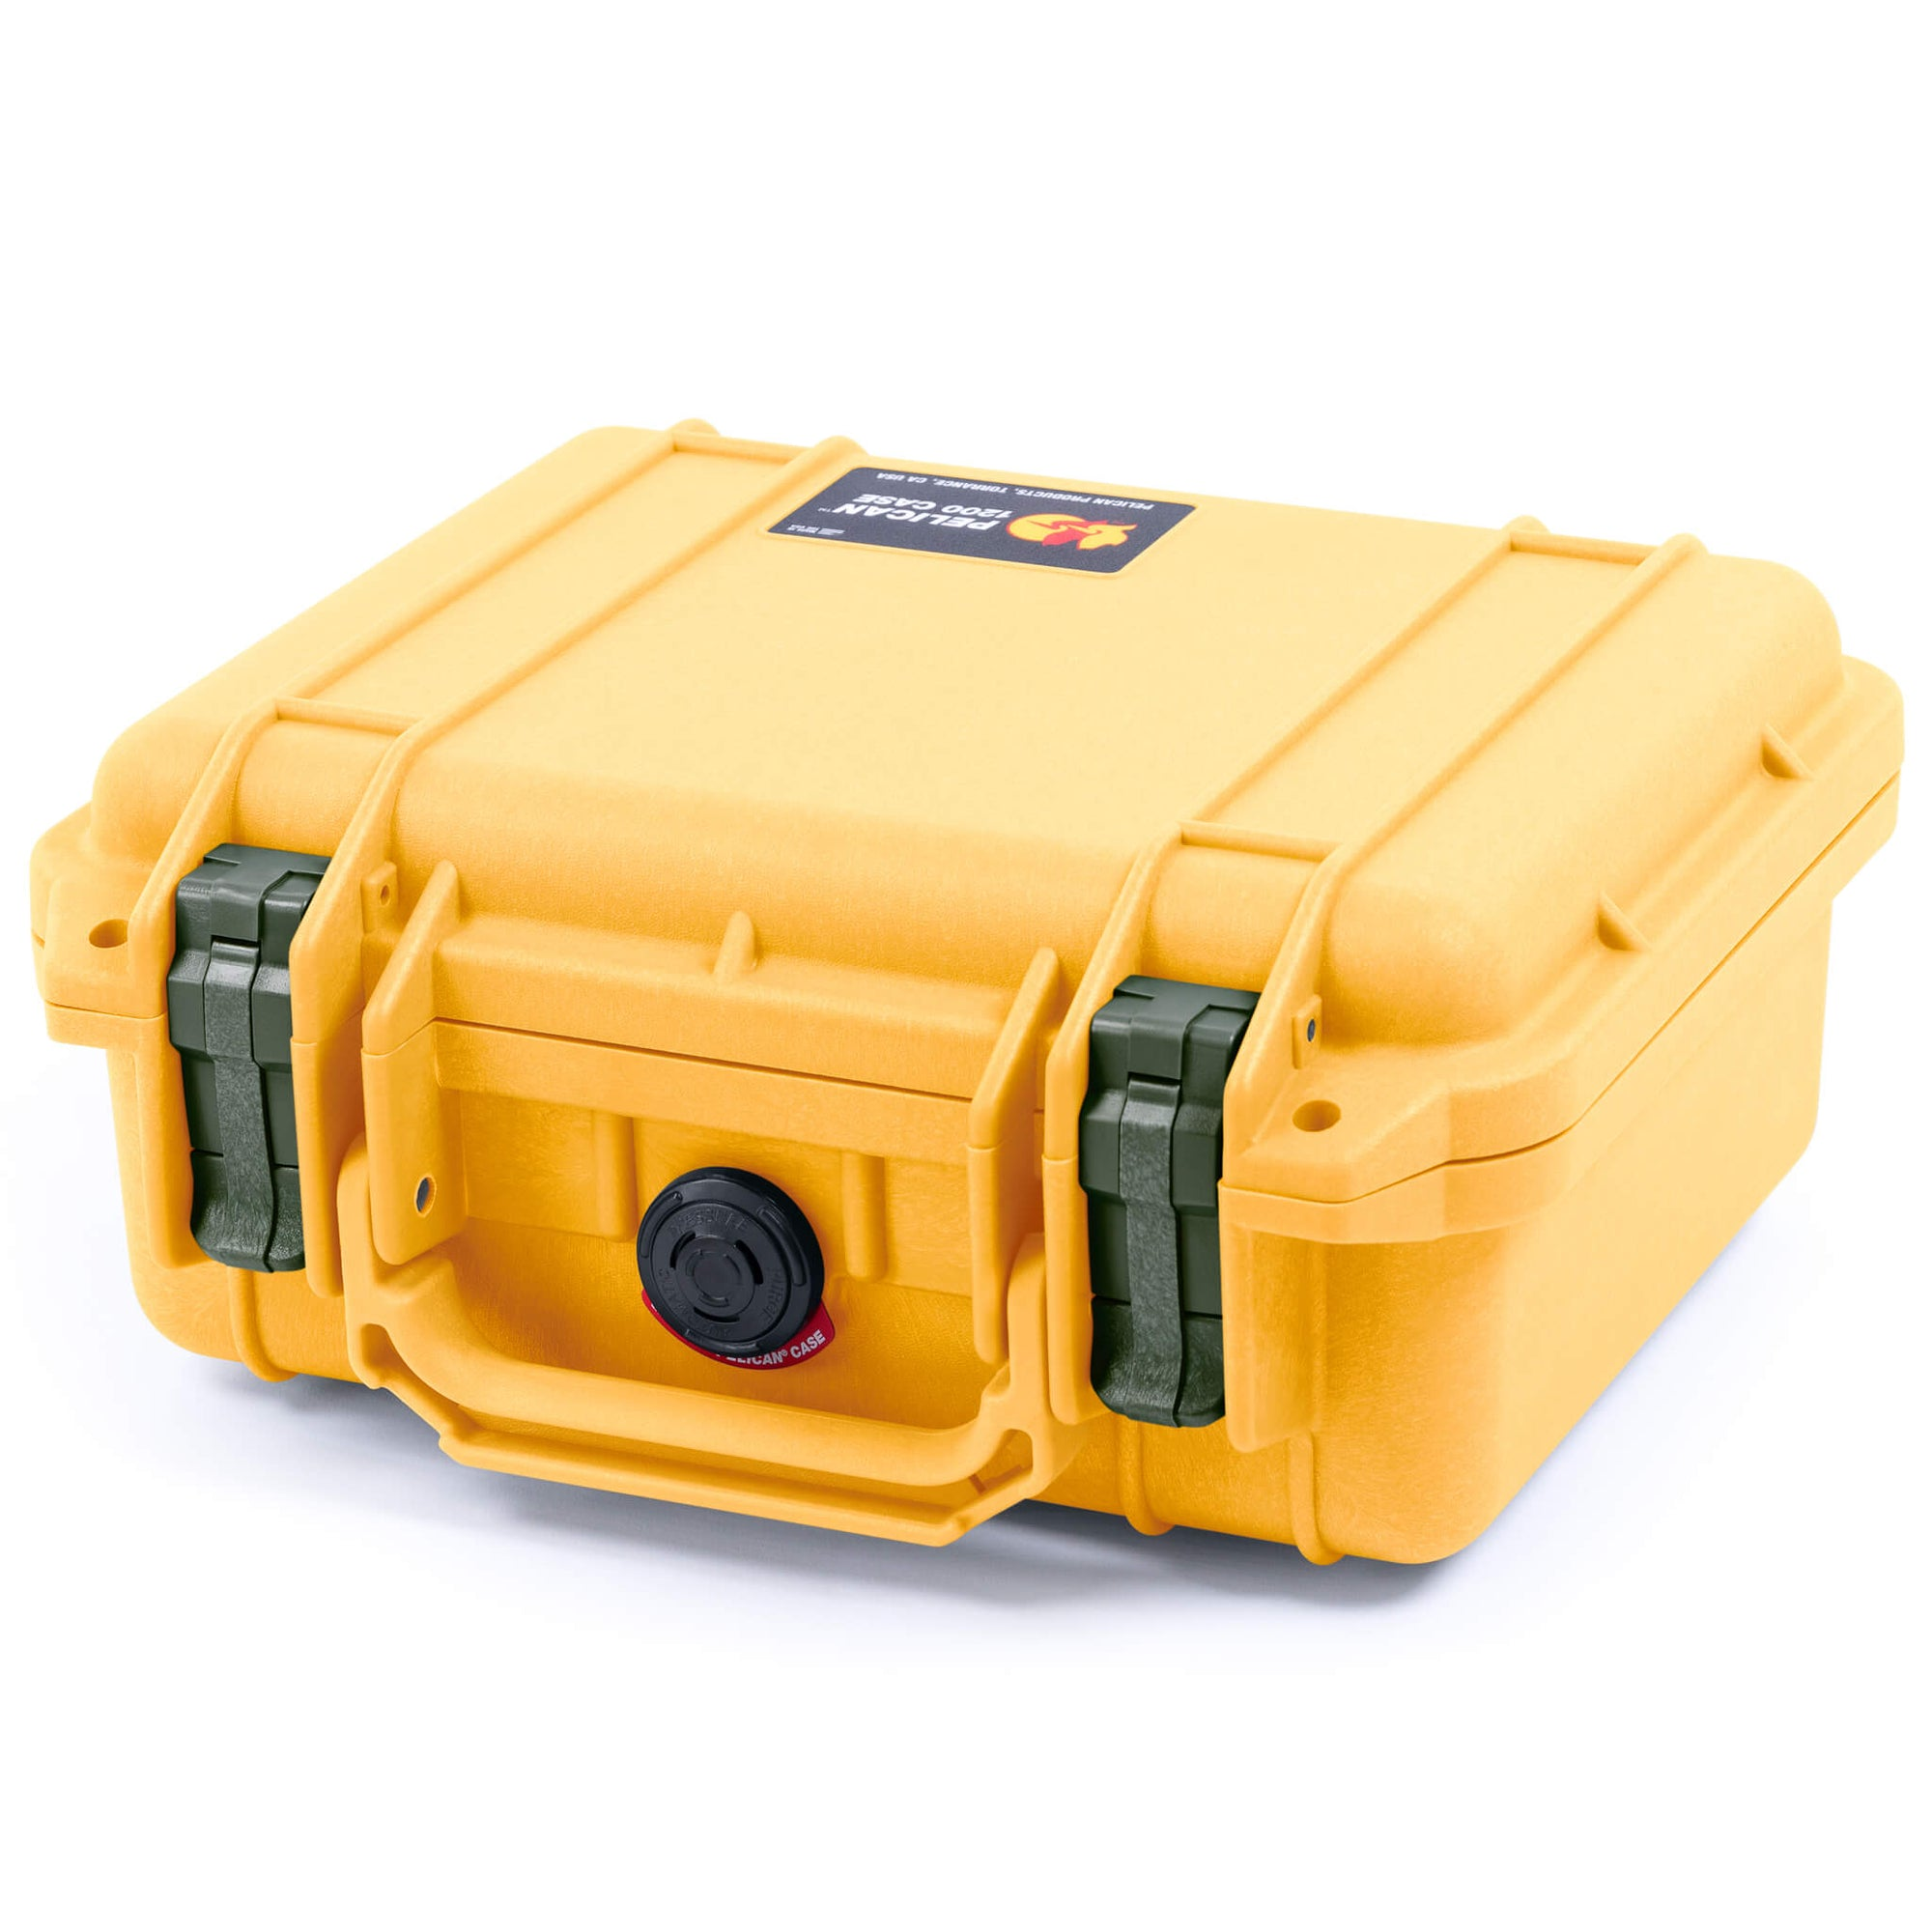 Pelican 1200 Case, Yellow with OD Green Handle & Latches